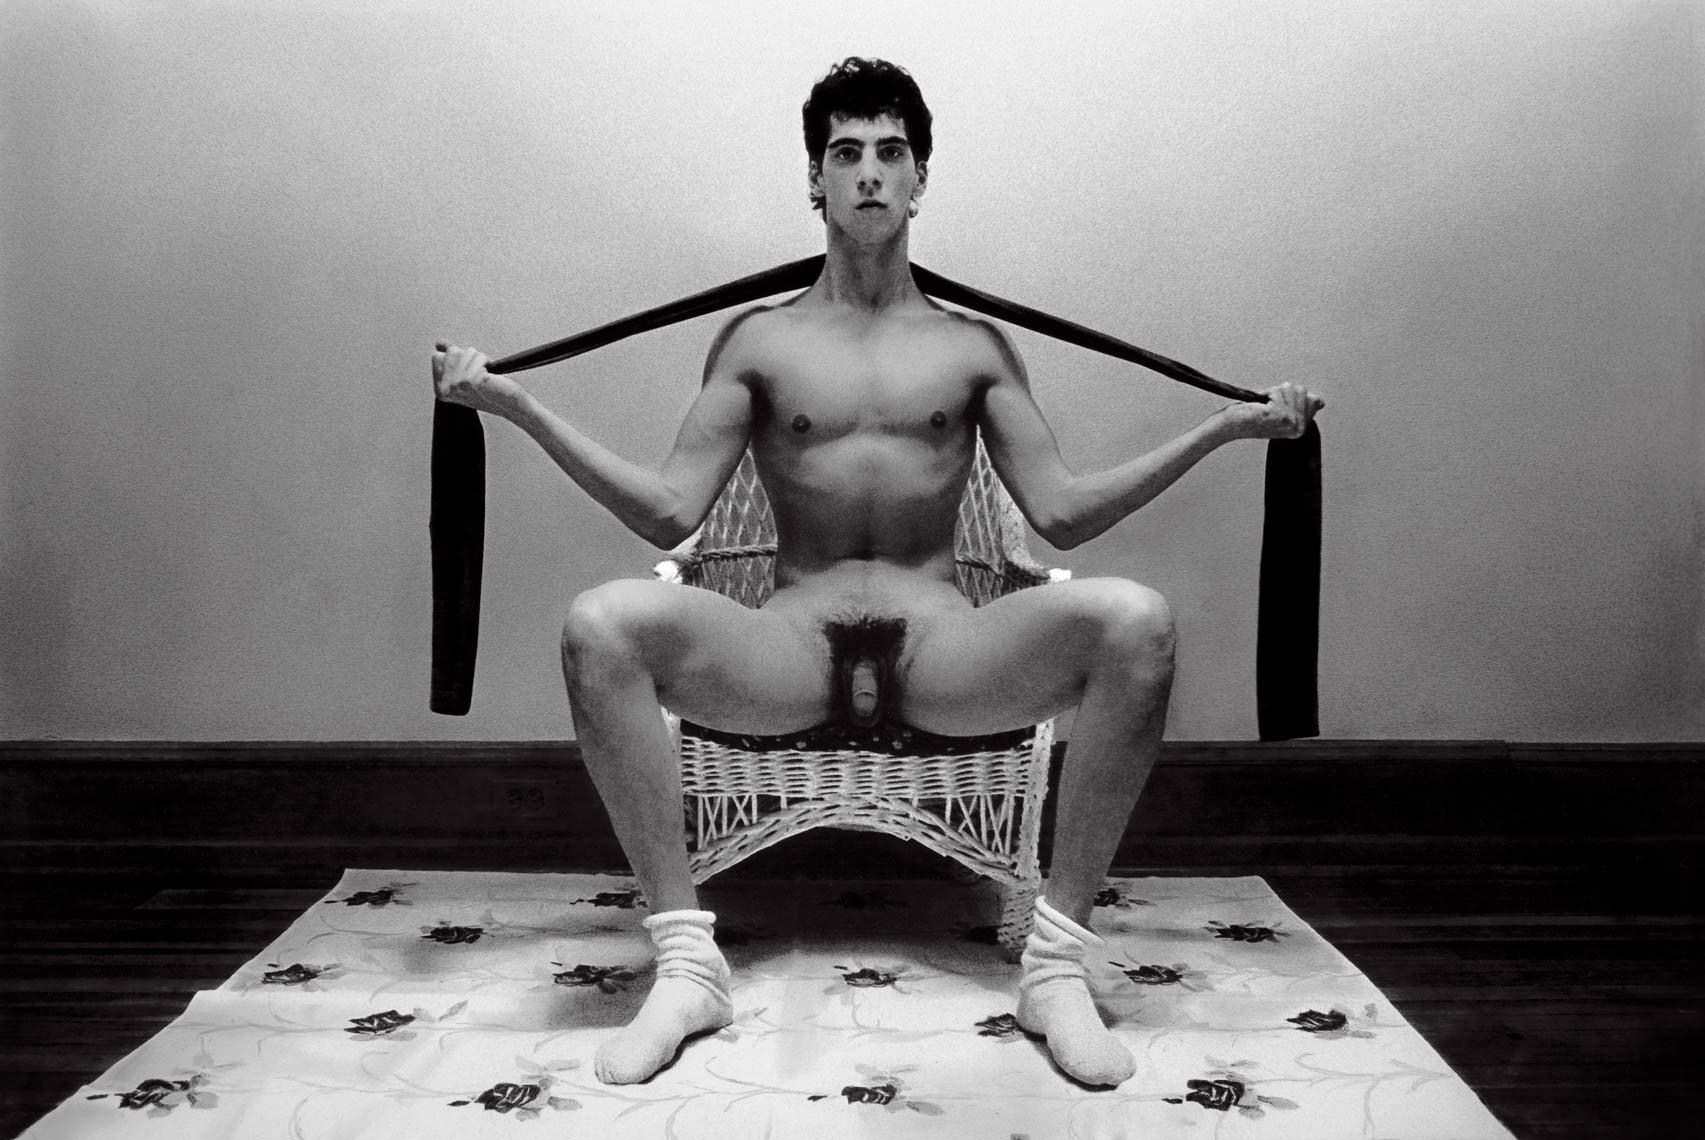 David Lebe; Socks, 1983, male nude, black and white photograph